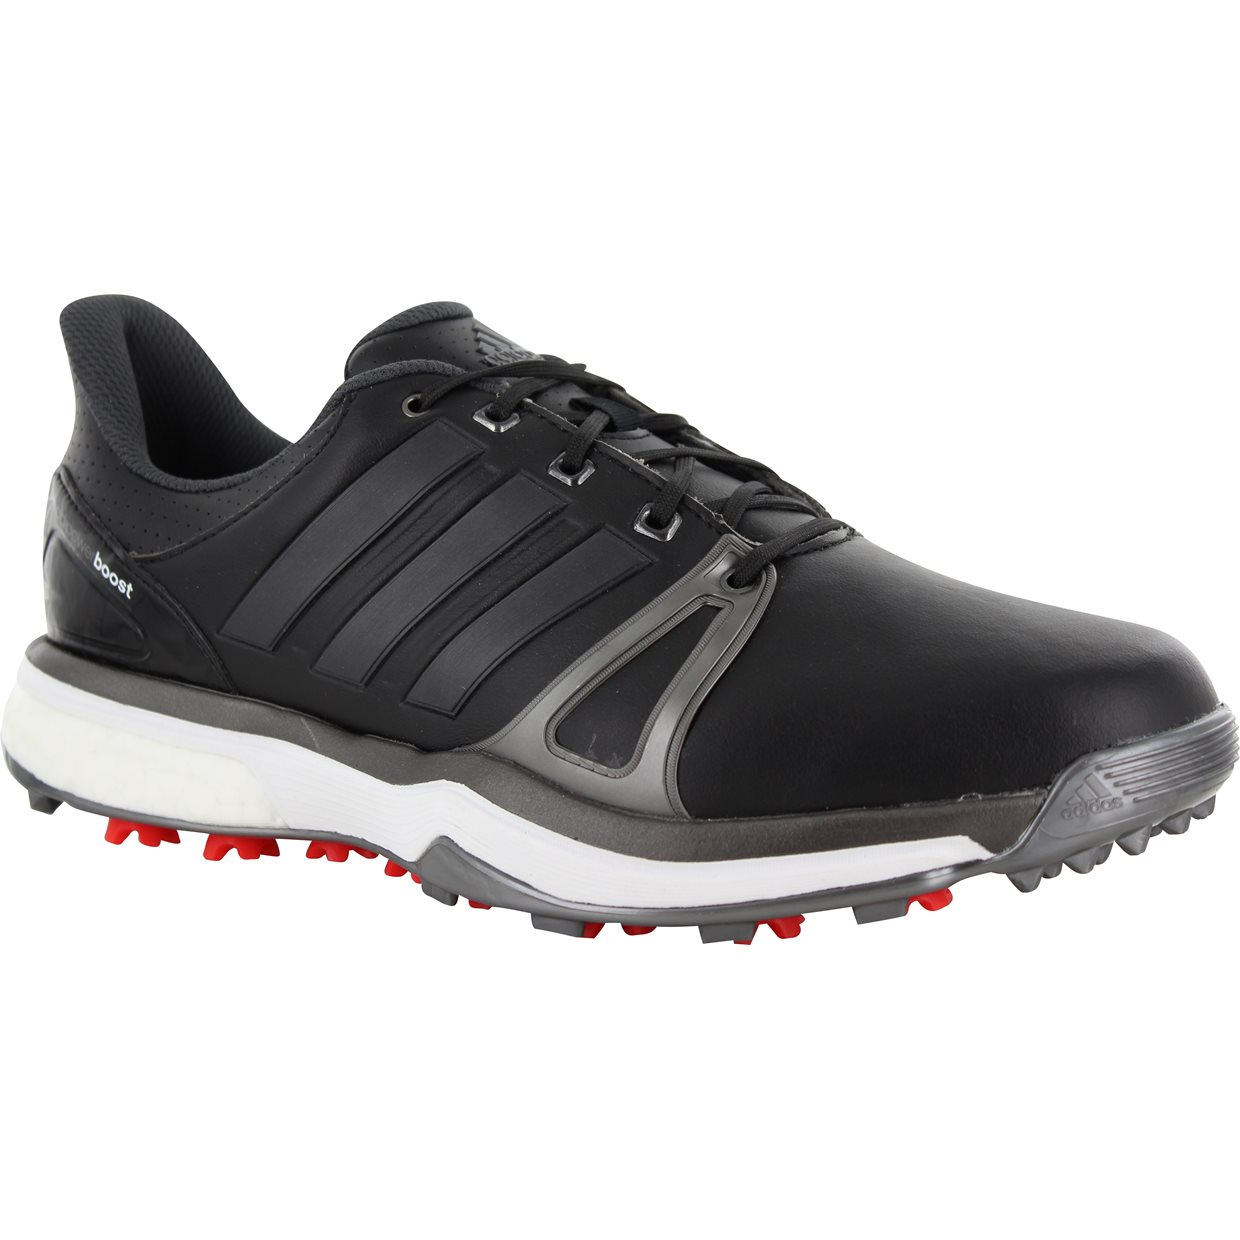 new adidas 2016 adipower boost 2 mens golf shoes pick. Black Bedroom Furniture Sets. Home Design Ideas